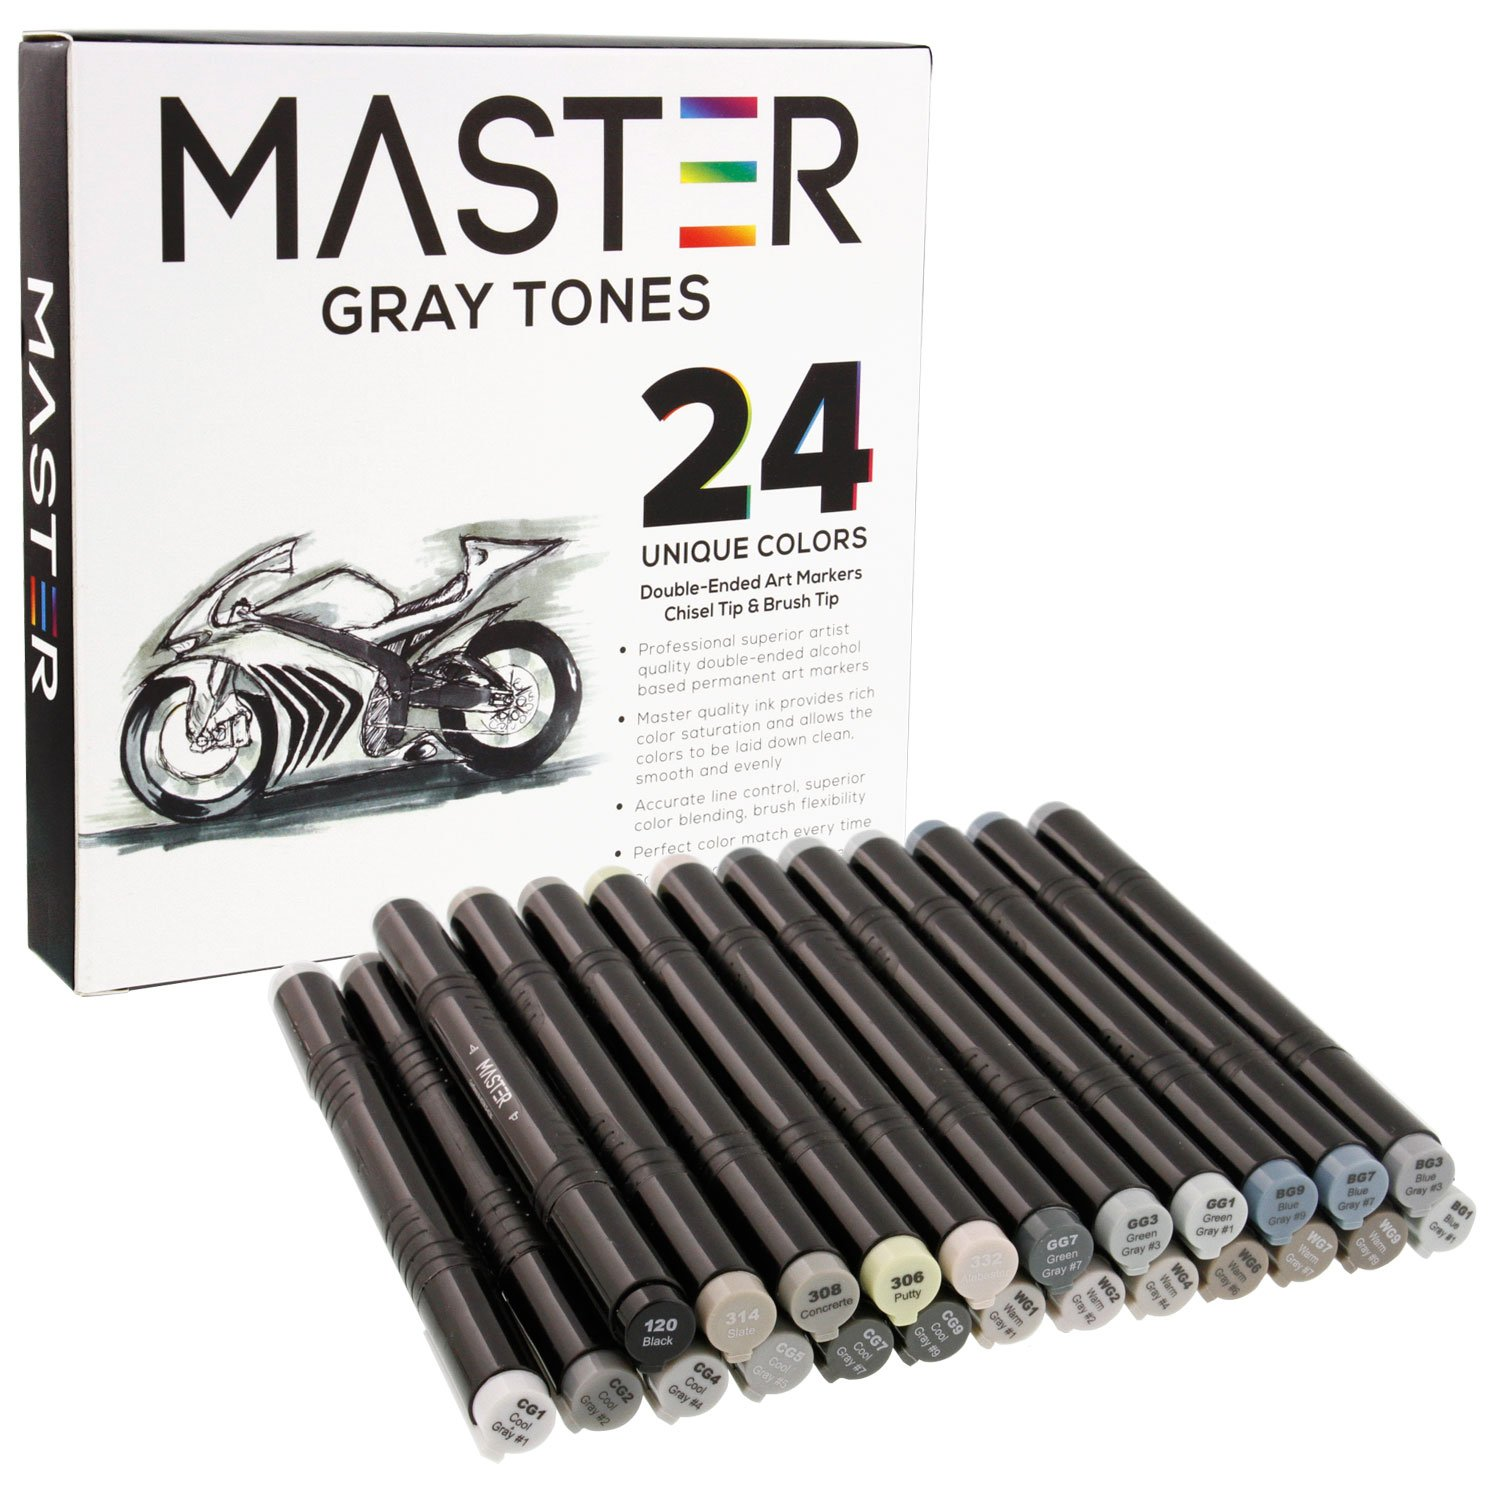 24 Color Master Markers Gray Tones Dual Tip Set - Double-Ended Grayscale Art Markers with Chisel Point and Standard Brush Tip - Soft Grip Barrels - Draw, Sketch, Shade, Illustrate, Render